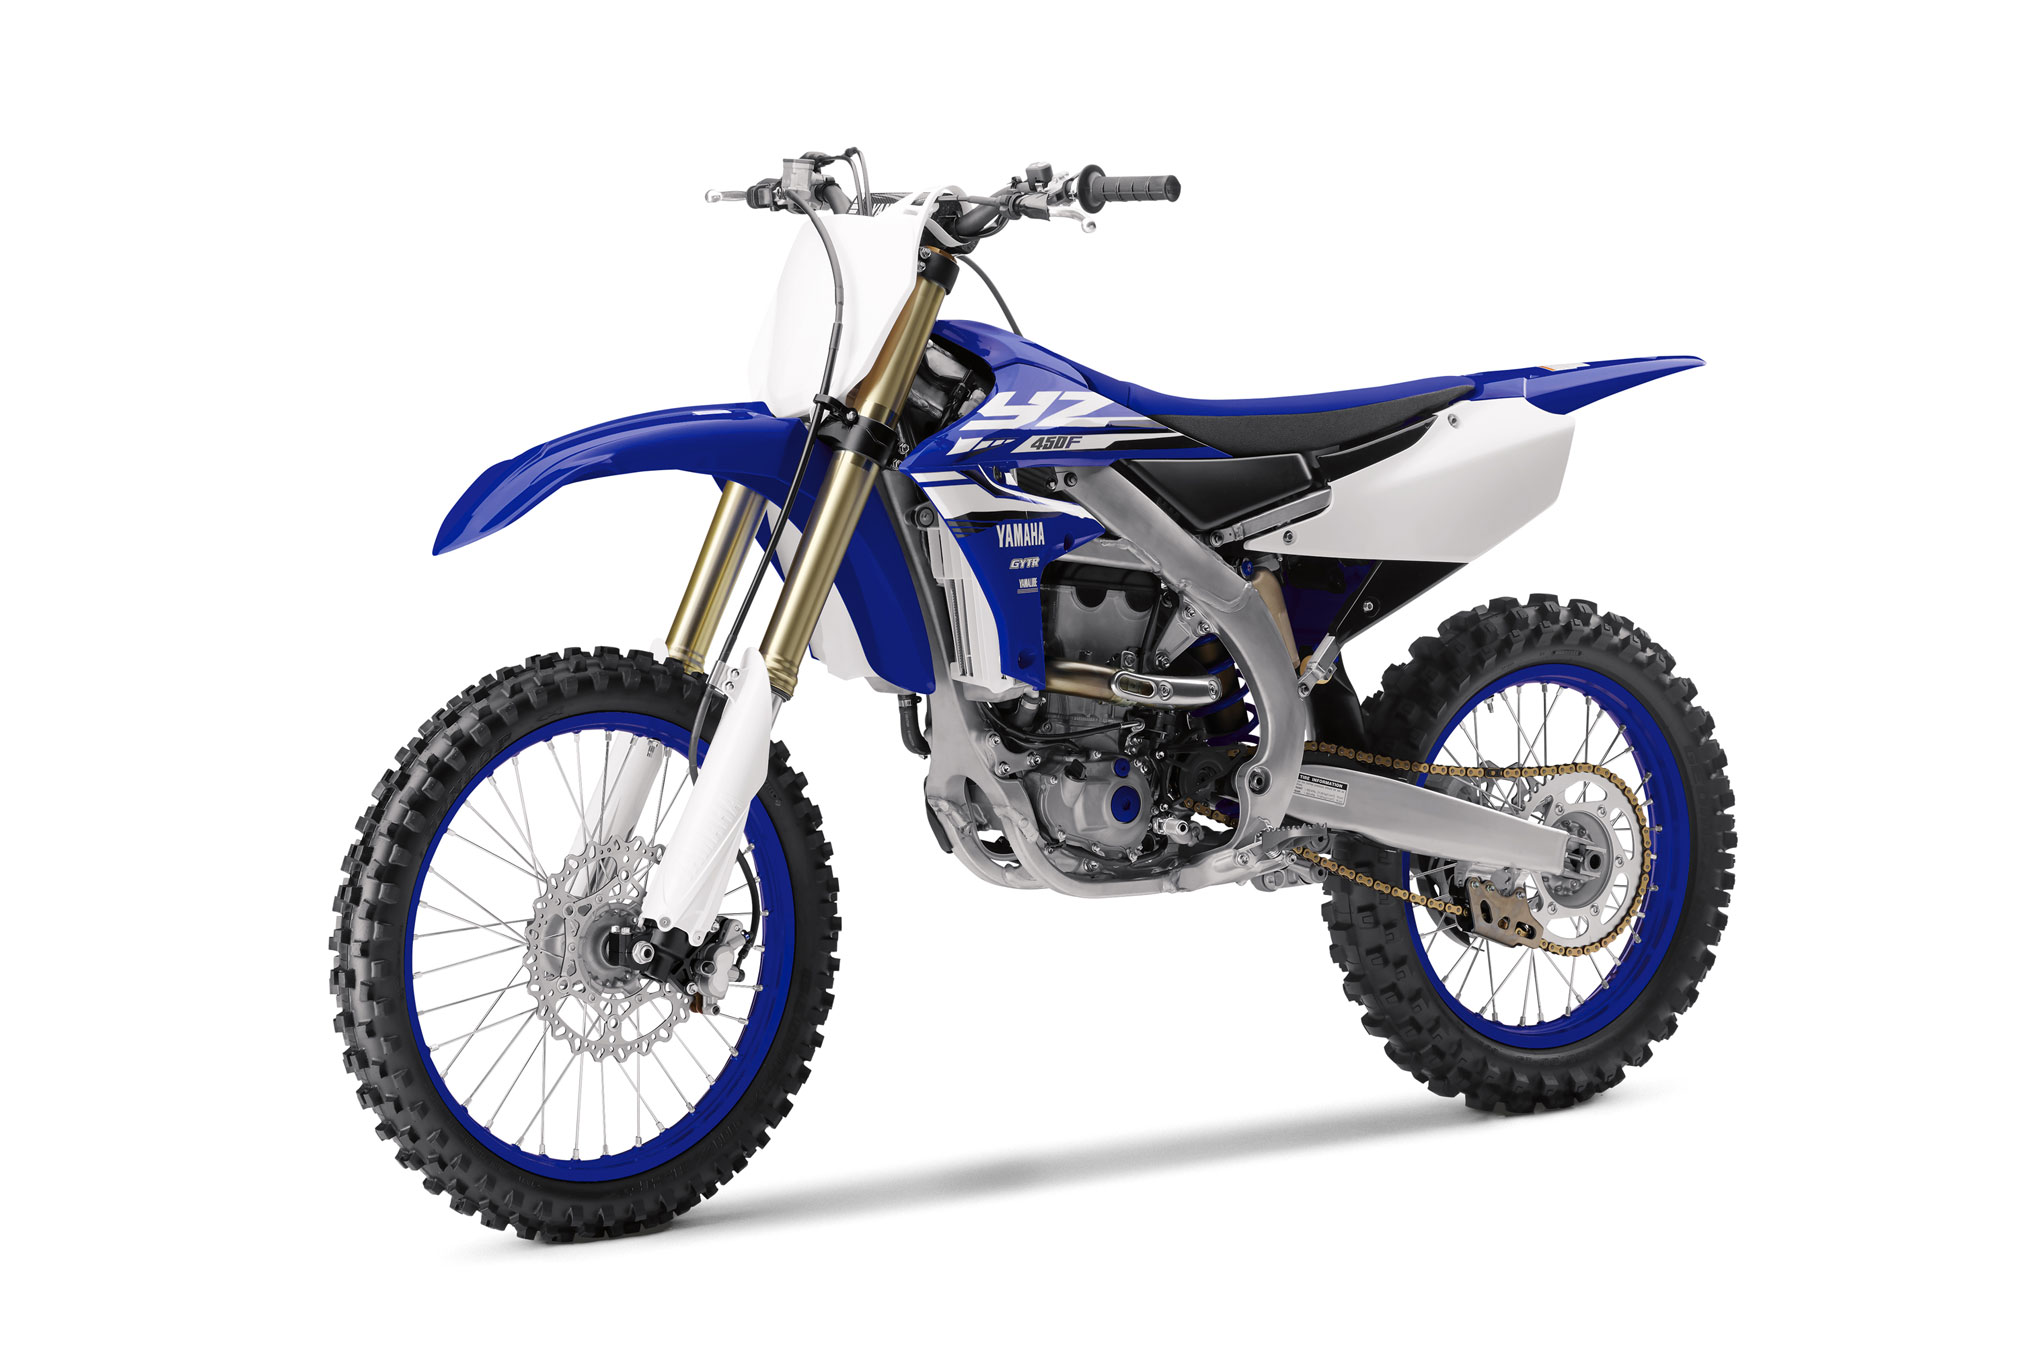 2018 Yamaha YZ450F Review • Total Motorcycle